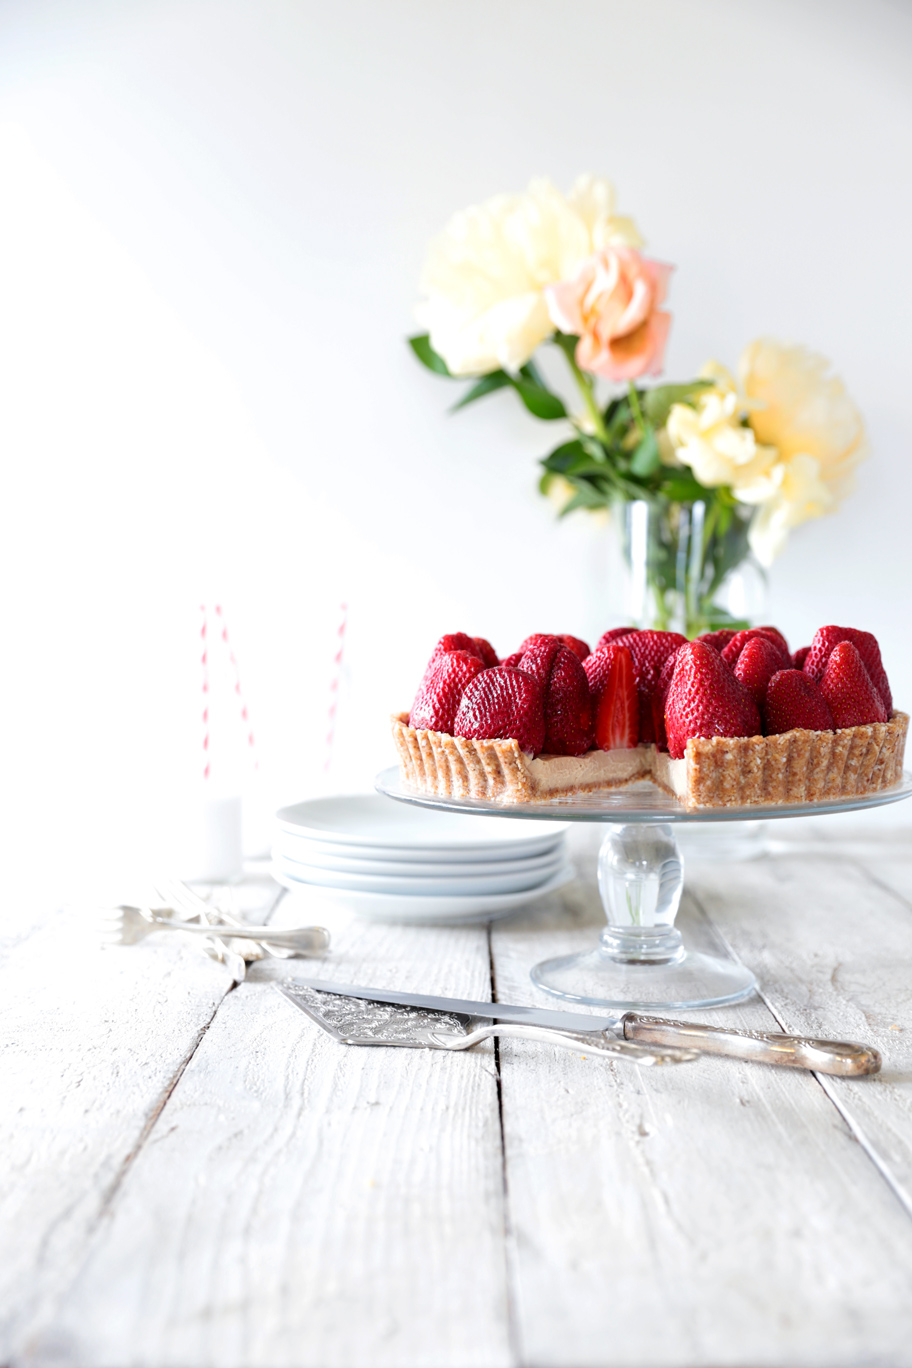 If you liked this Raw Strawberry Tart recipe you might also like: